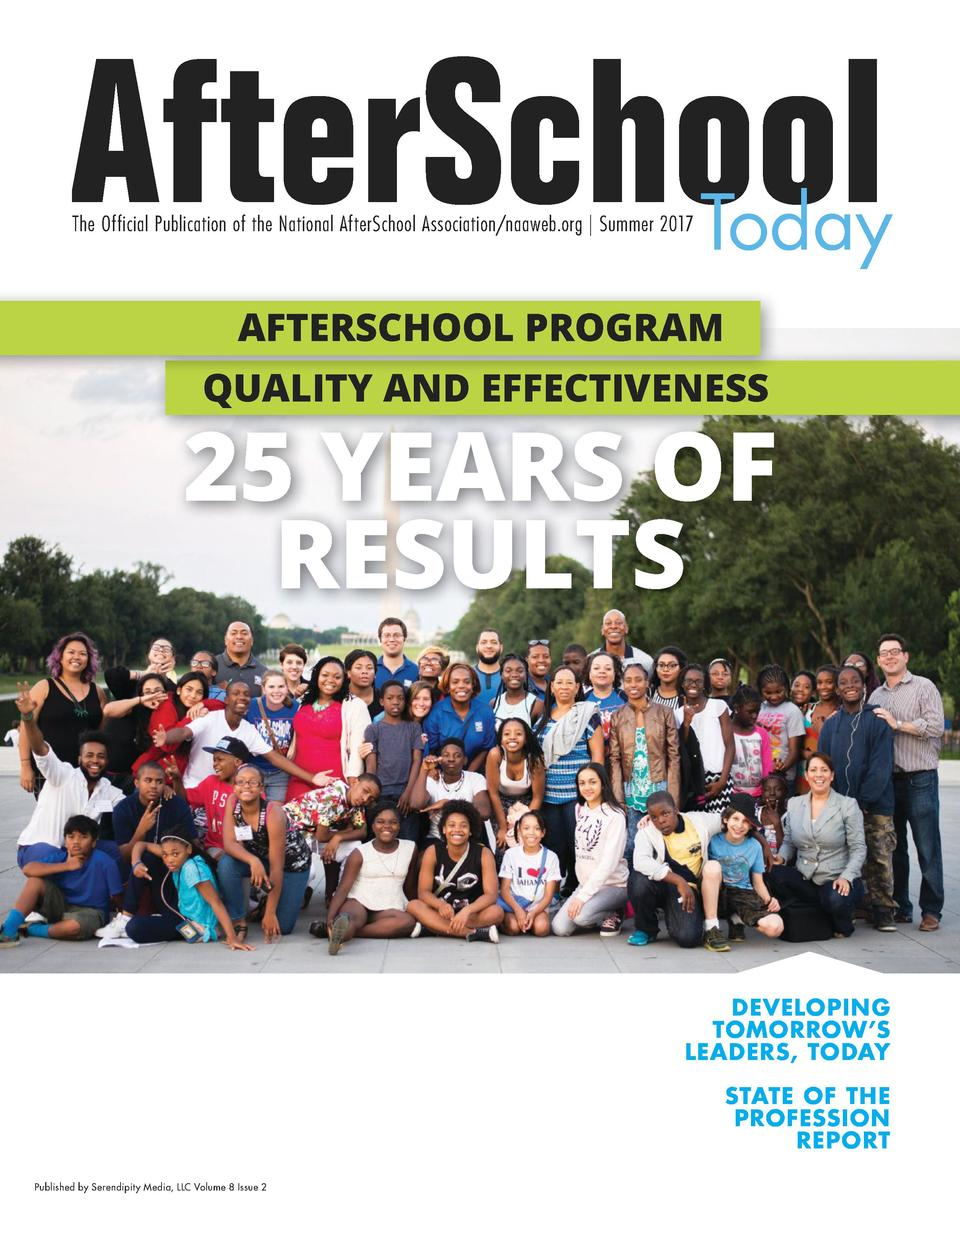 AfterSchool The Official Publication of the National AfterSchool Association naaweb.org   Summer 2017  Today  AFTERSCHOOL ...